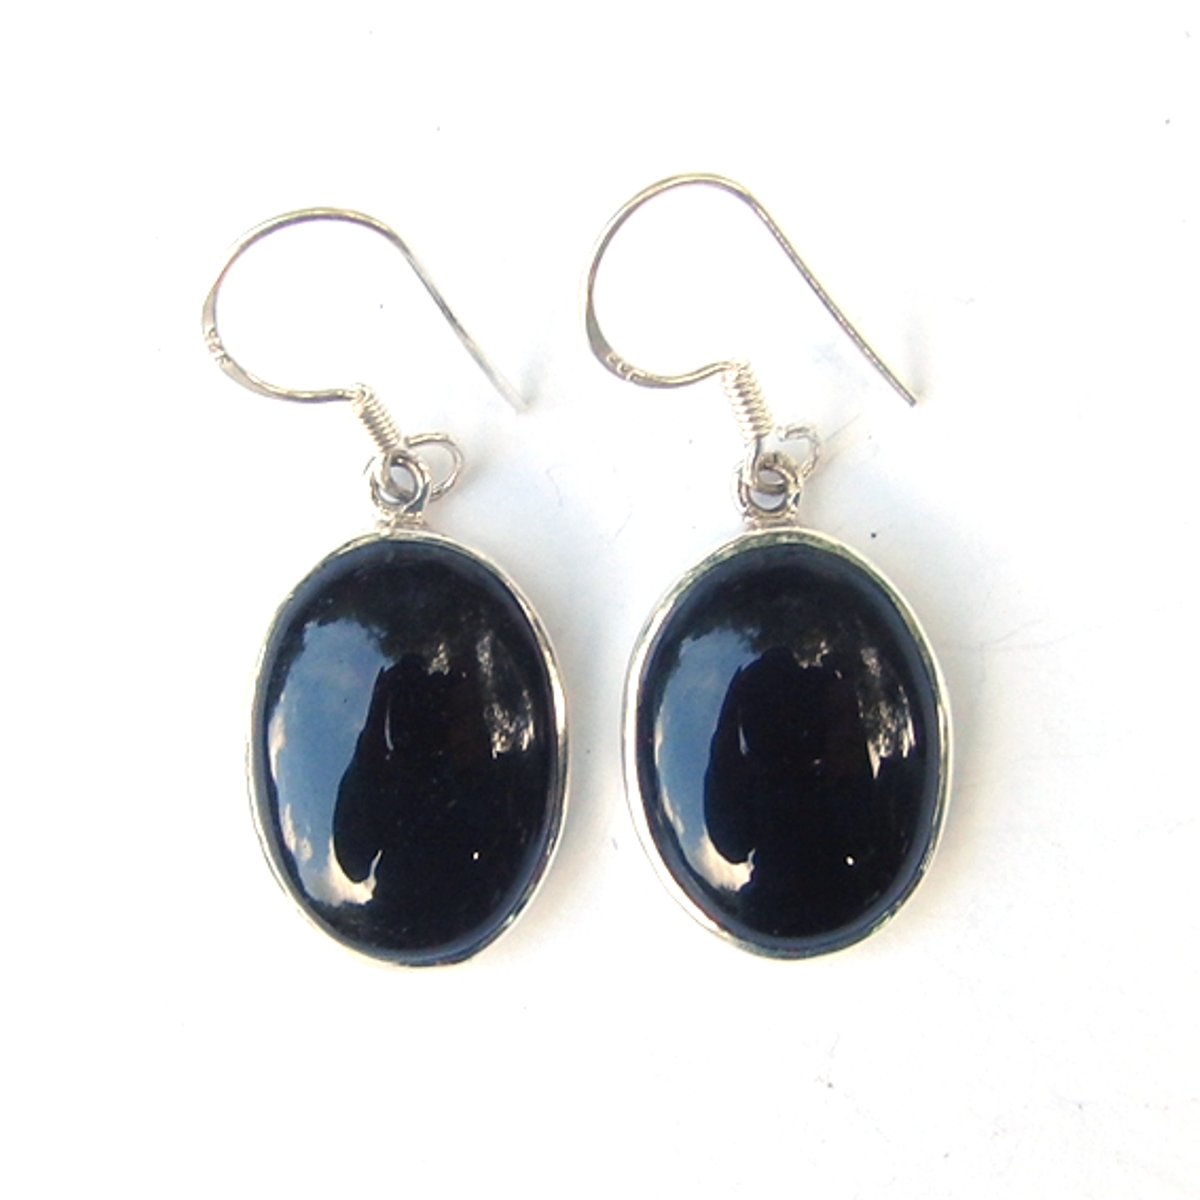 Black Onyx Large Cab Earrings.